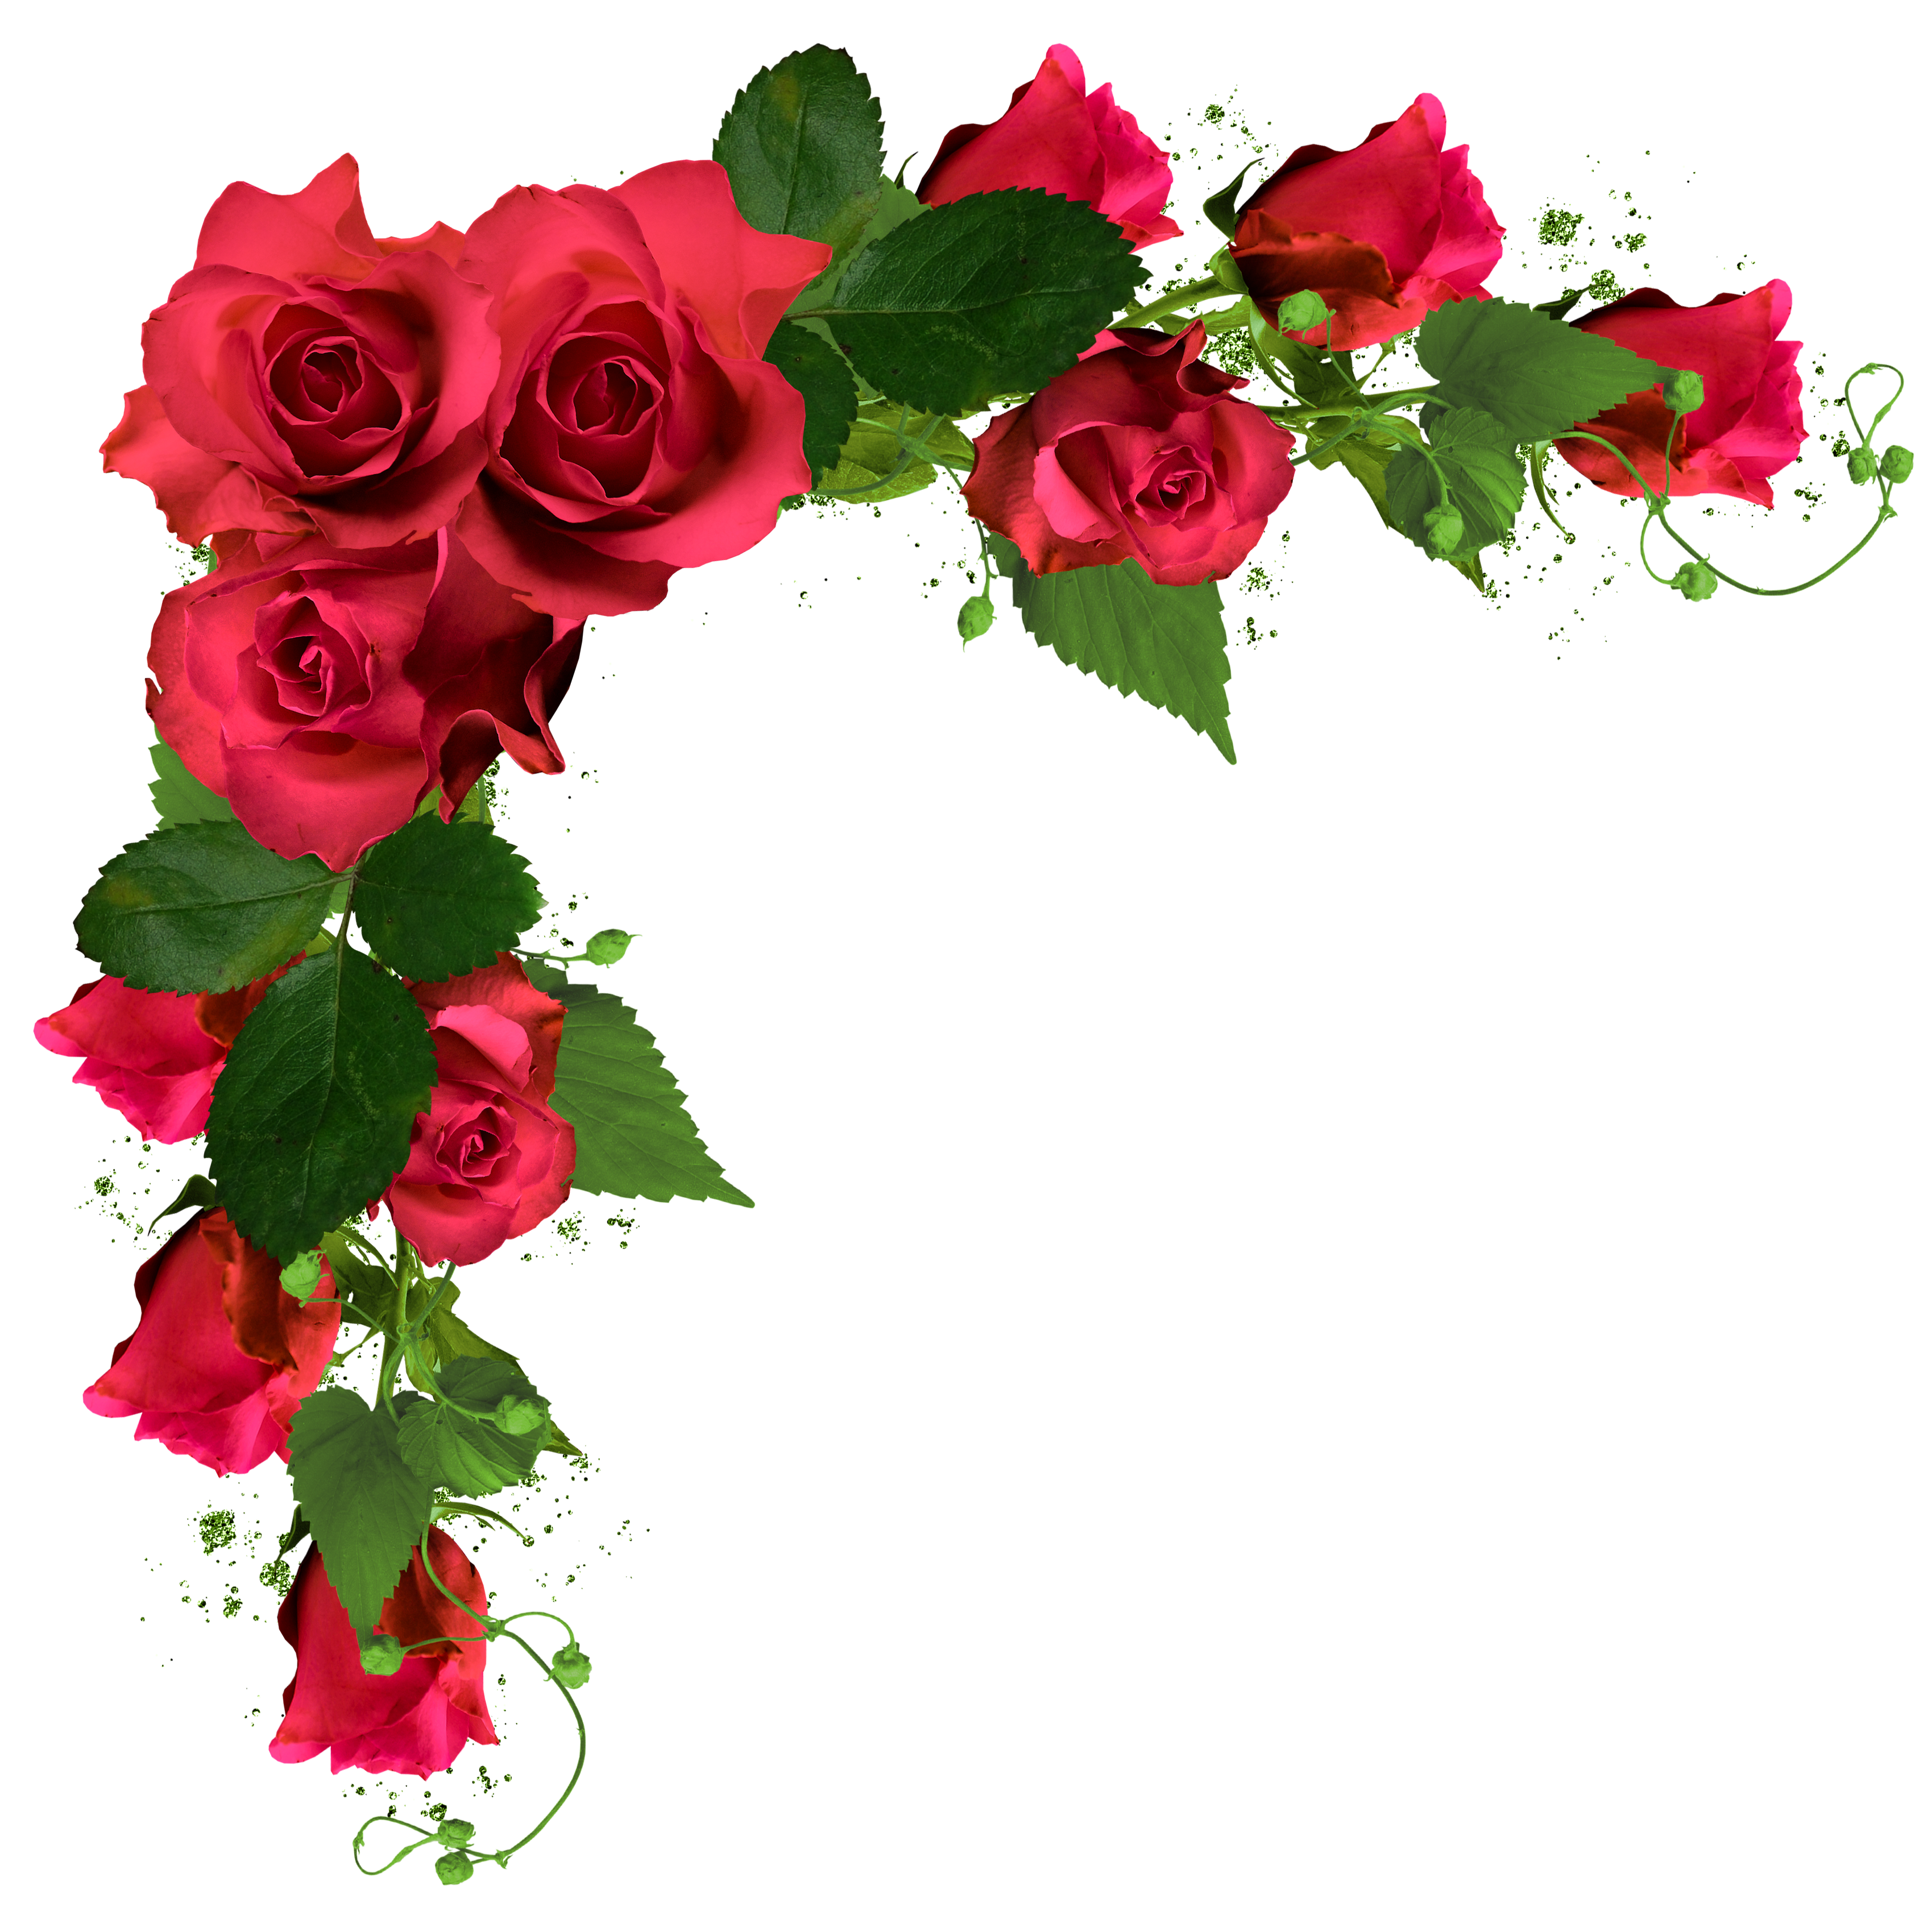 Red Flower clipart nice view #10